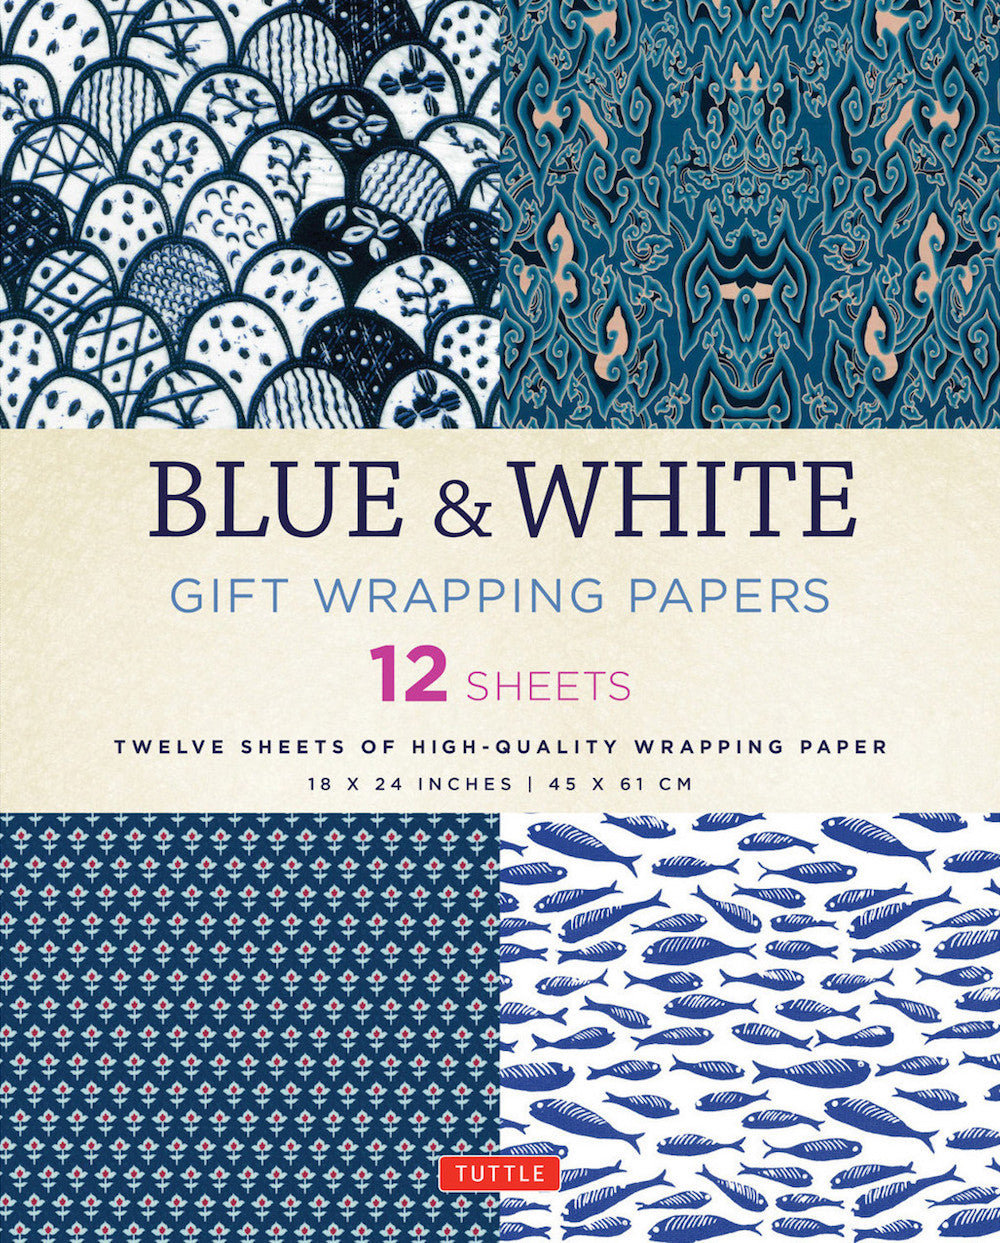 Blue & White Gift Wrapping Paper